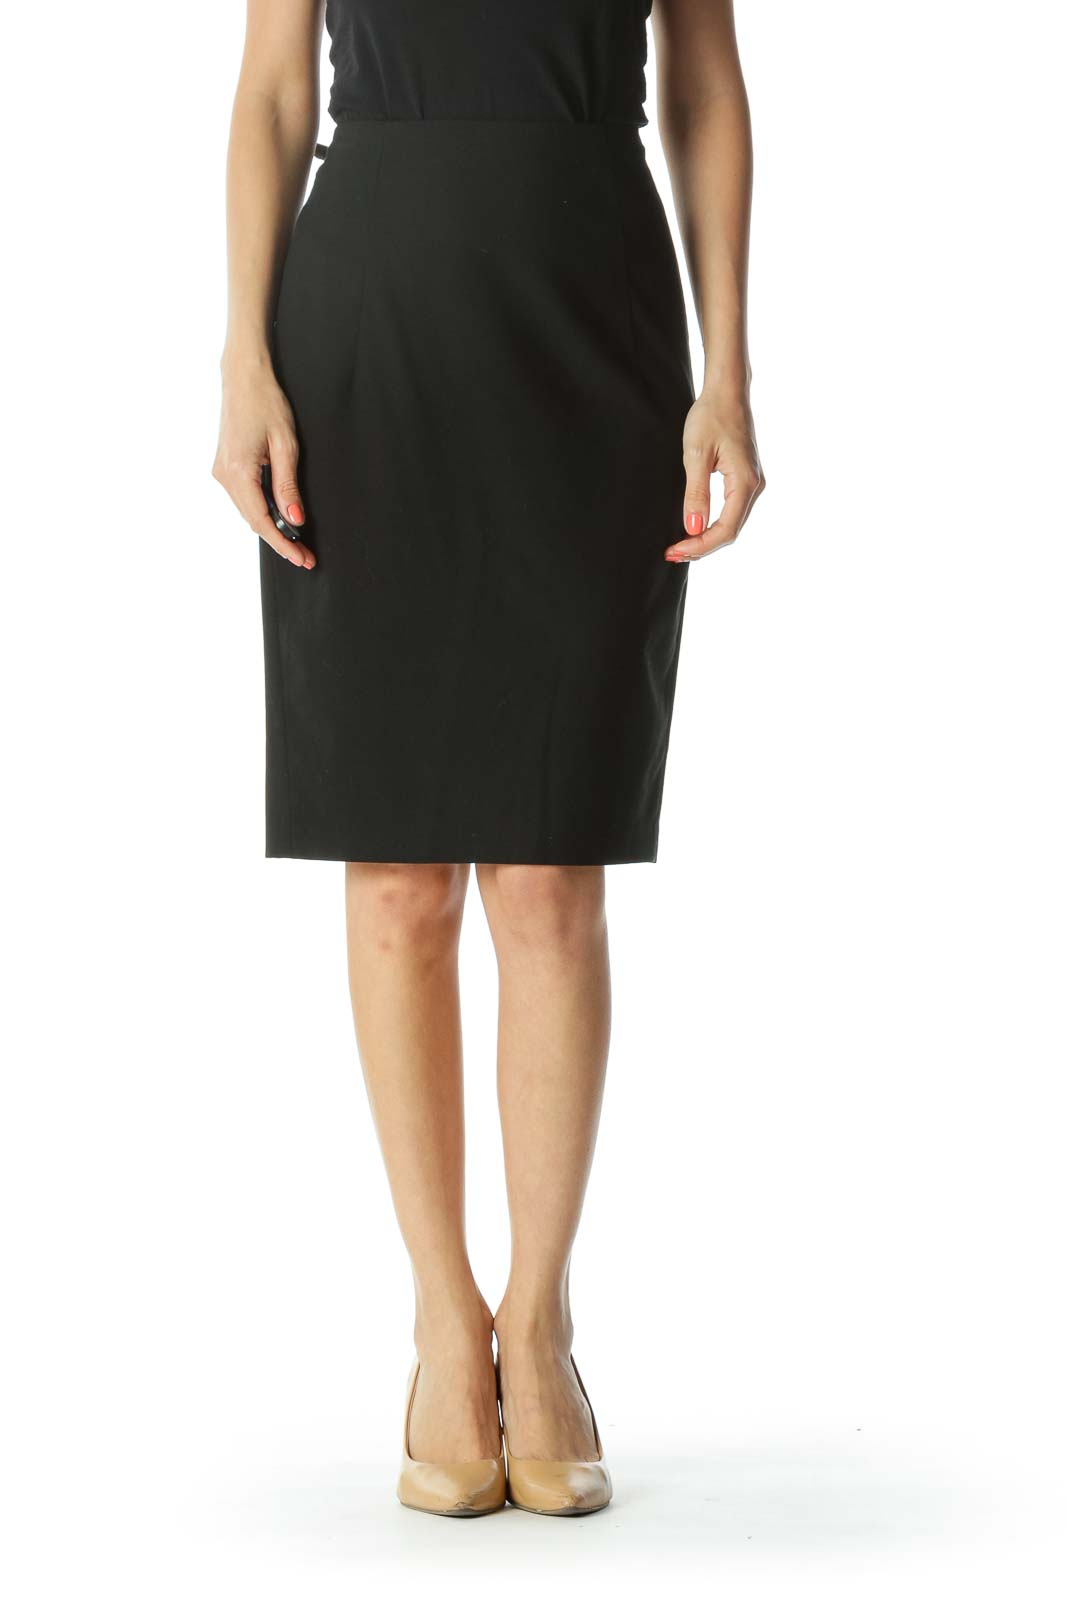 Black Back-Visible-Zipper-Detail Leg-Slit Pencil Skirt